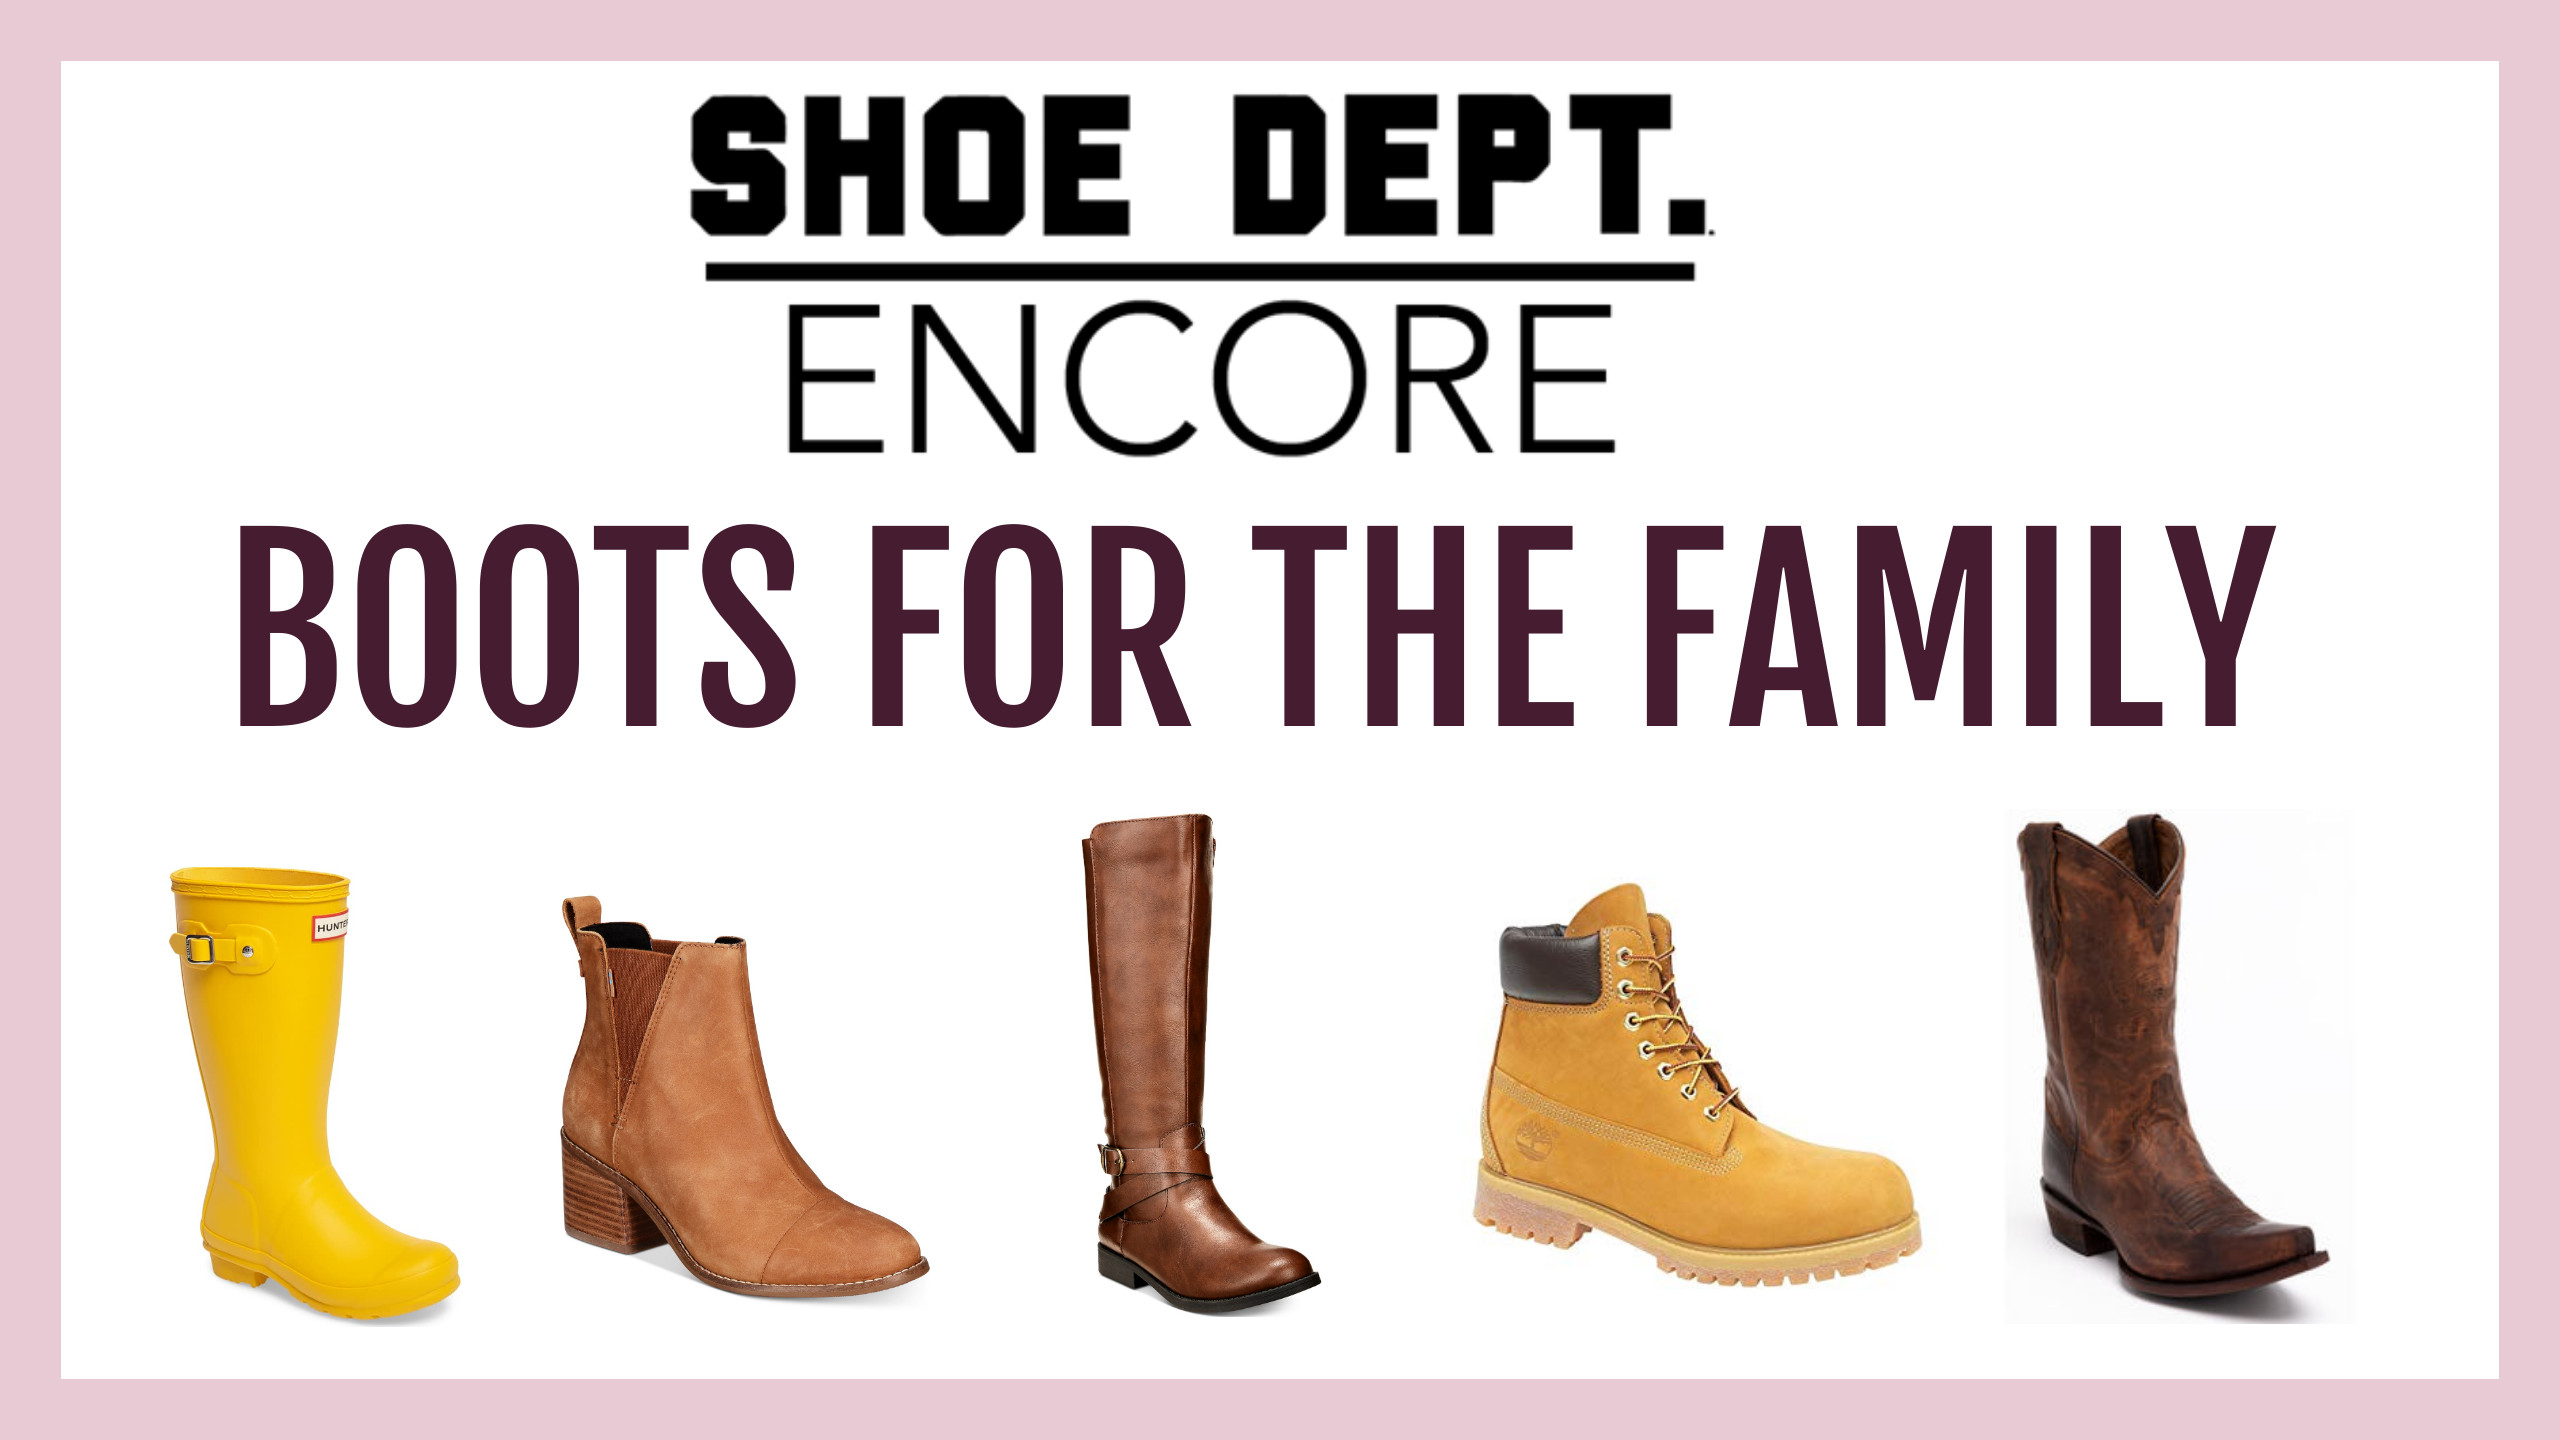 New Boot Arrivals from SHOE DEPT. ENCORE